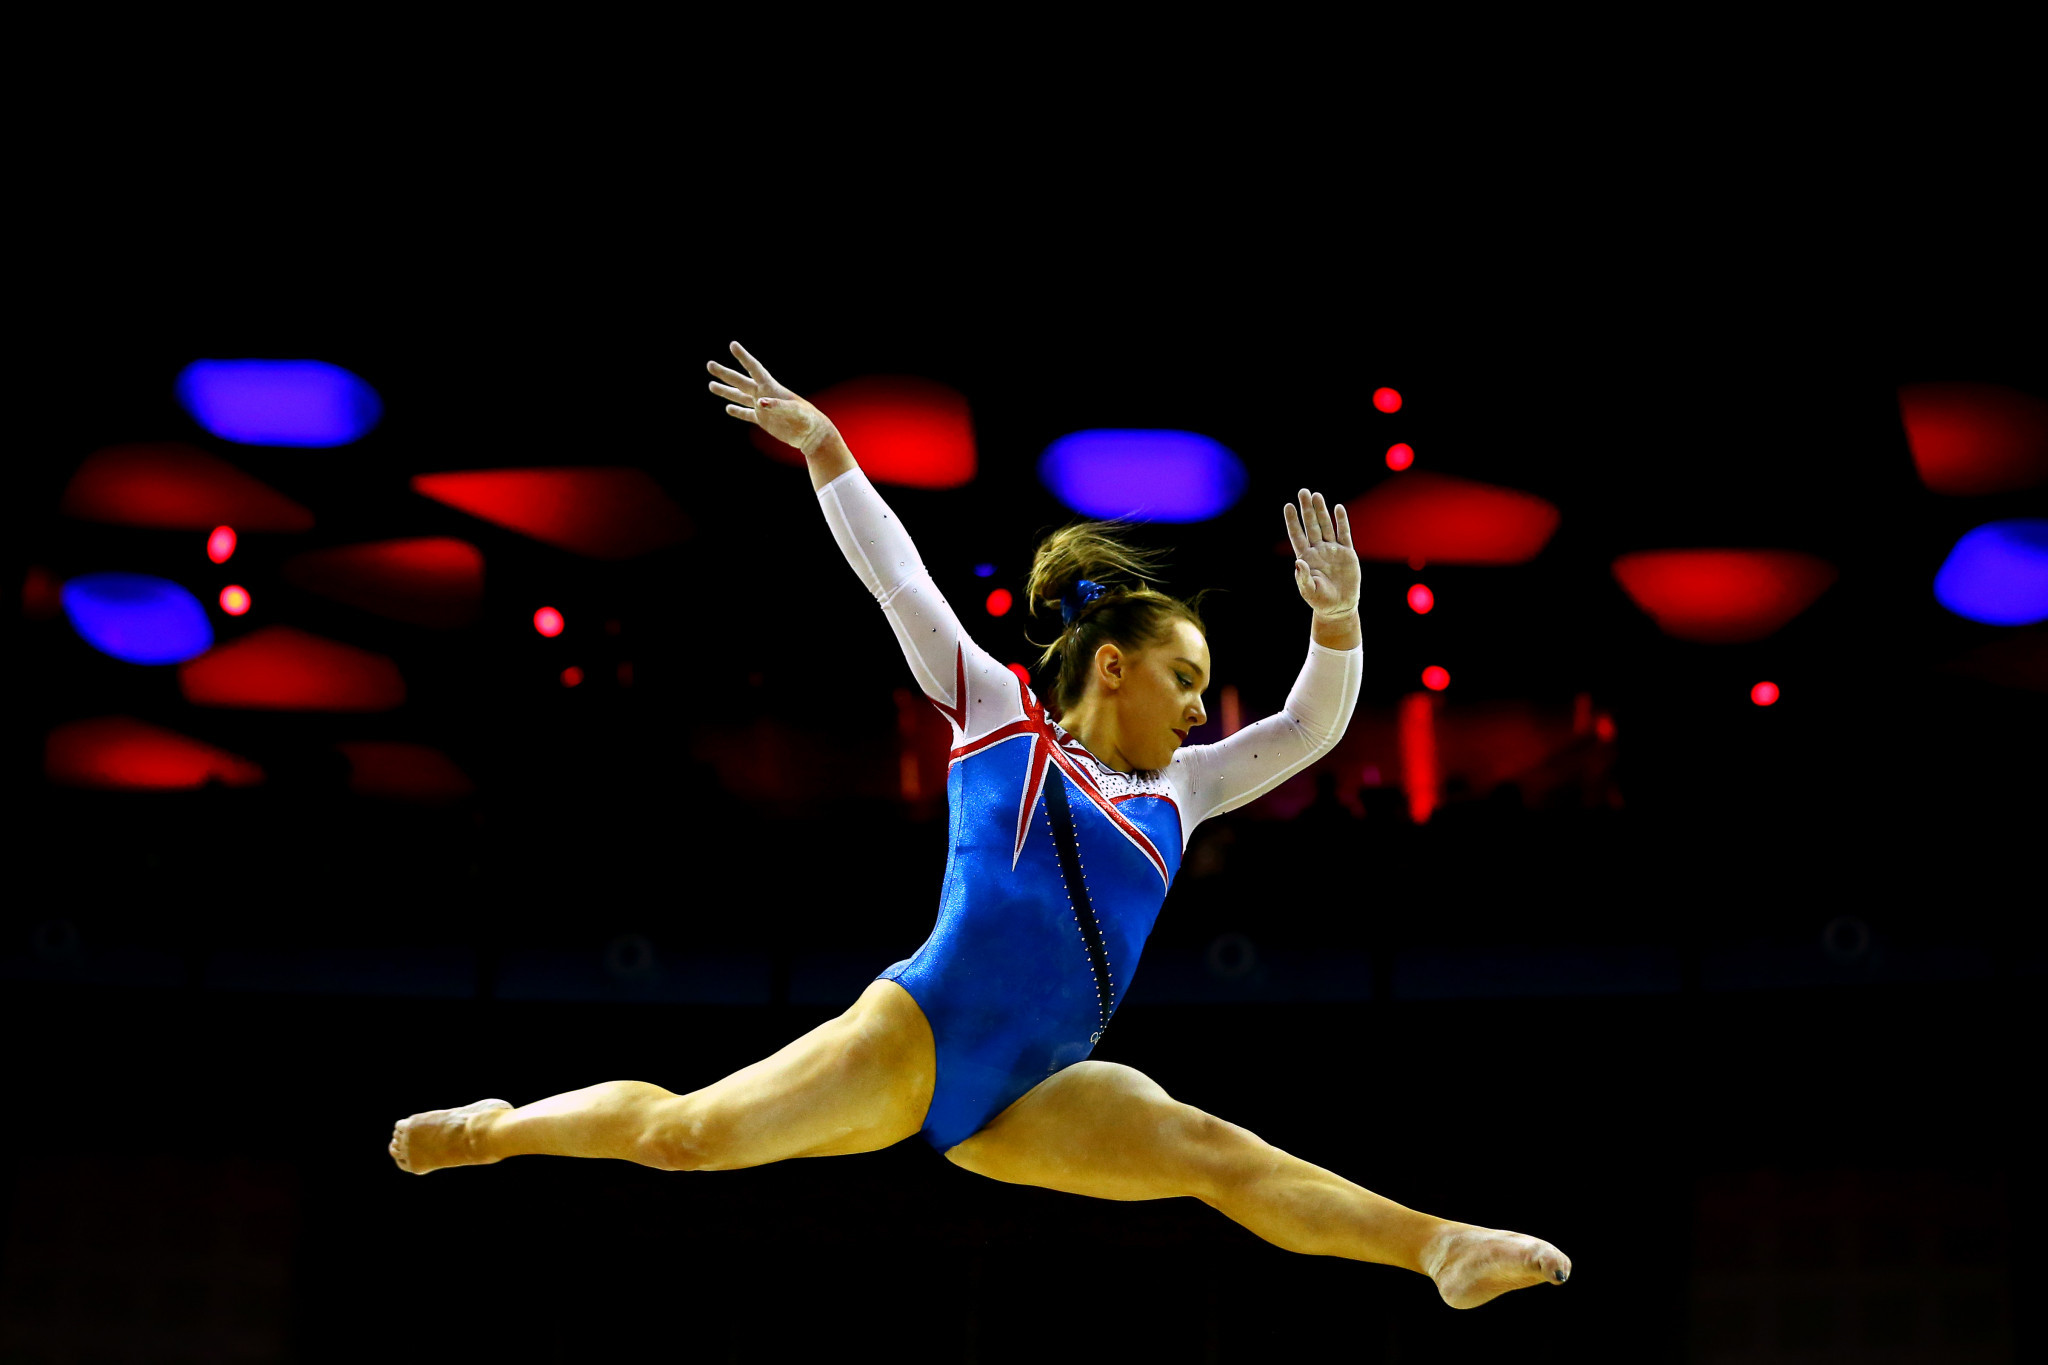 Gymnastics parent group criticises UK Sport for stance on abuse inquiry